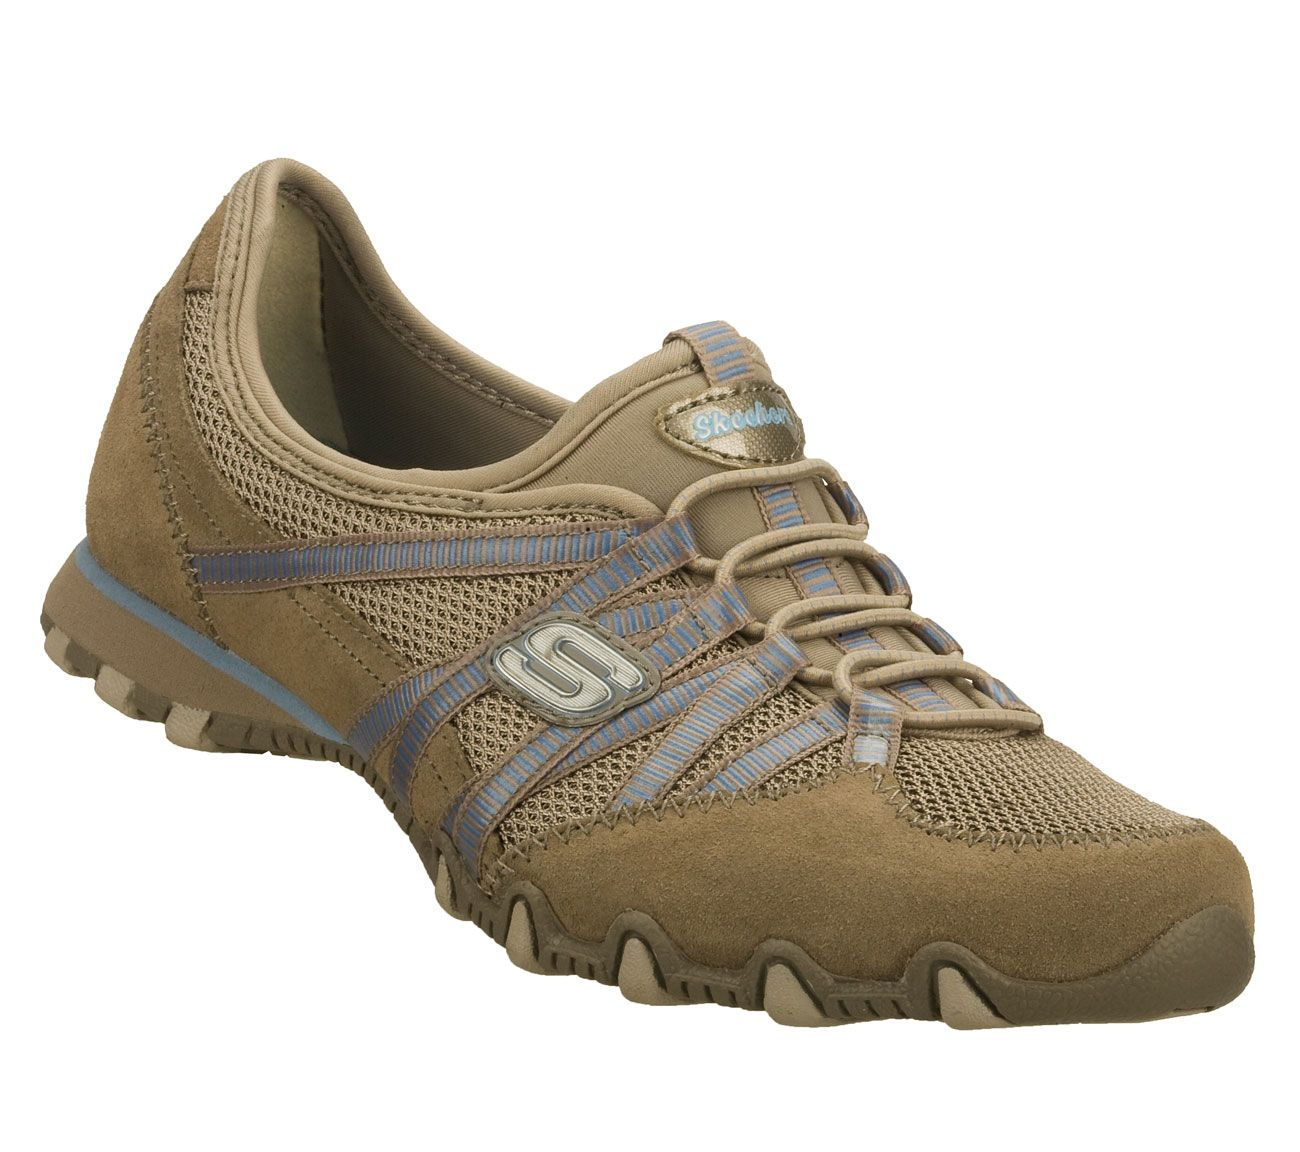 Buy SKECHERS Women's Bikers Hot Ticket Bungee Sneakers